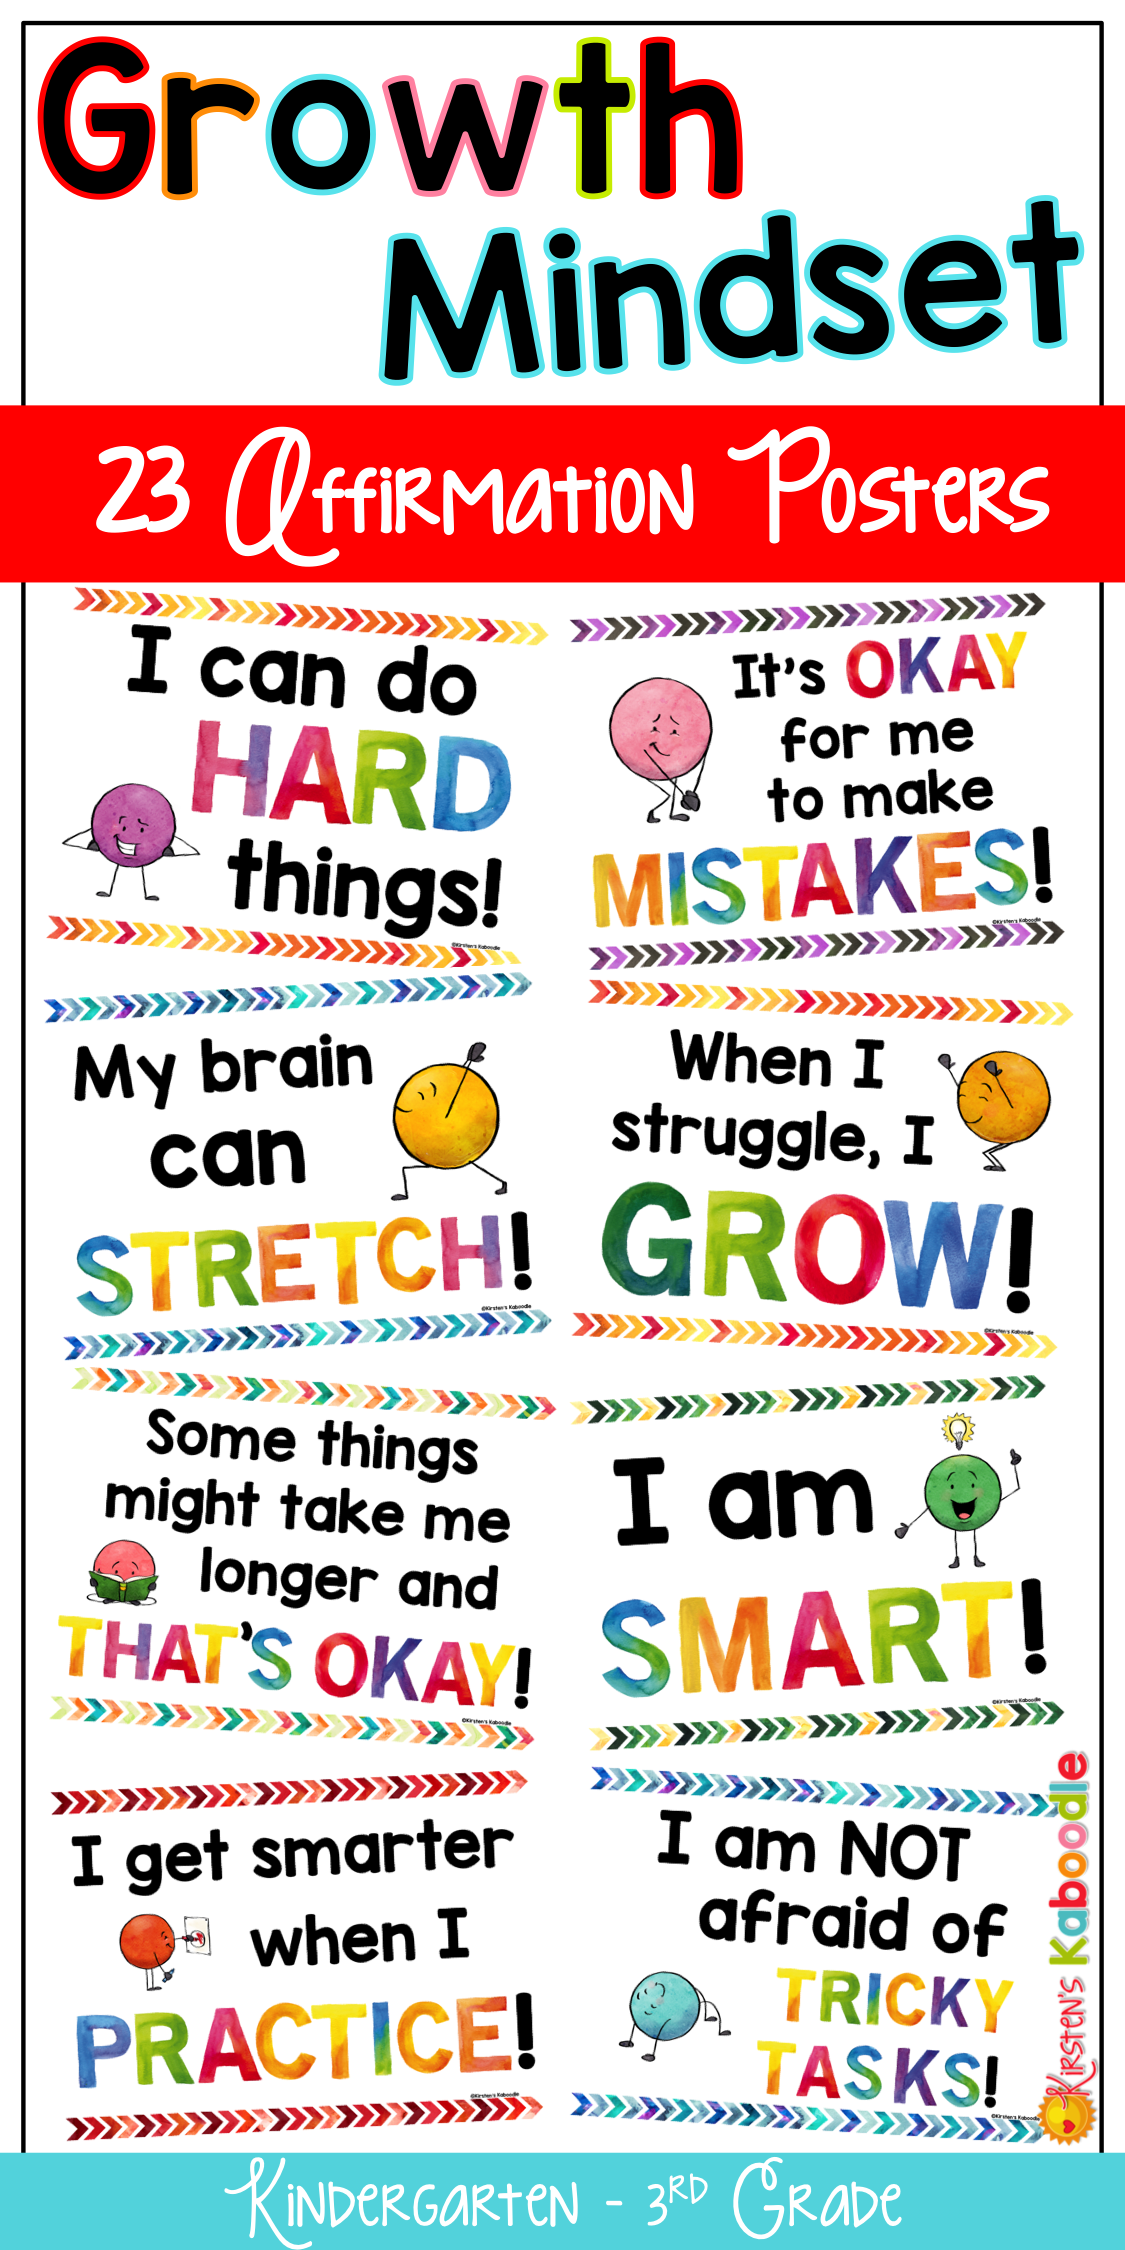 How Teachers Can Create Growth Mindset >> Growth Mindset Posters Bulletin Board Kirsten S Teachers Pay